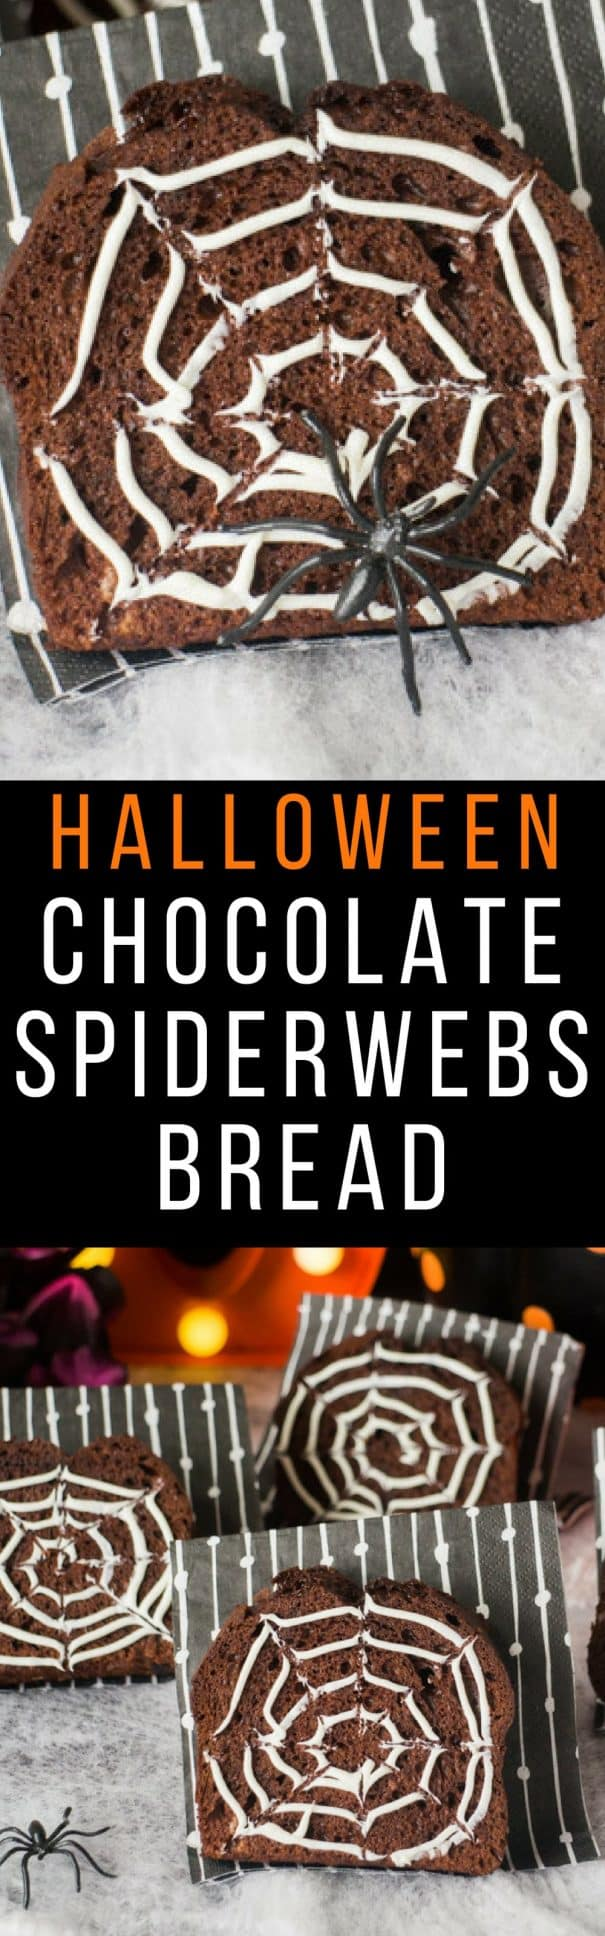 BOO! It's chocolate bread time! That's right, not chocolate cake, but chocolate bread! This chocolate bread recipe is so easy to make and chocolaty and creamy made with Nutella! UM YEAH - NOM NOM NOM! Bake this bread in a loaf pan and then cut into slices to decorate with white frosting spider webs! Save this recipe for Halloween!